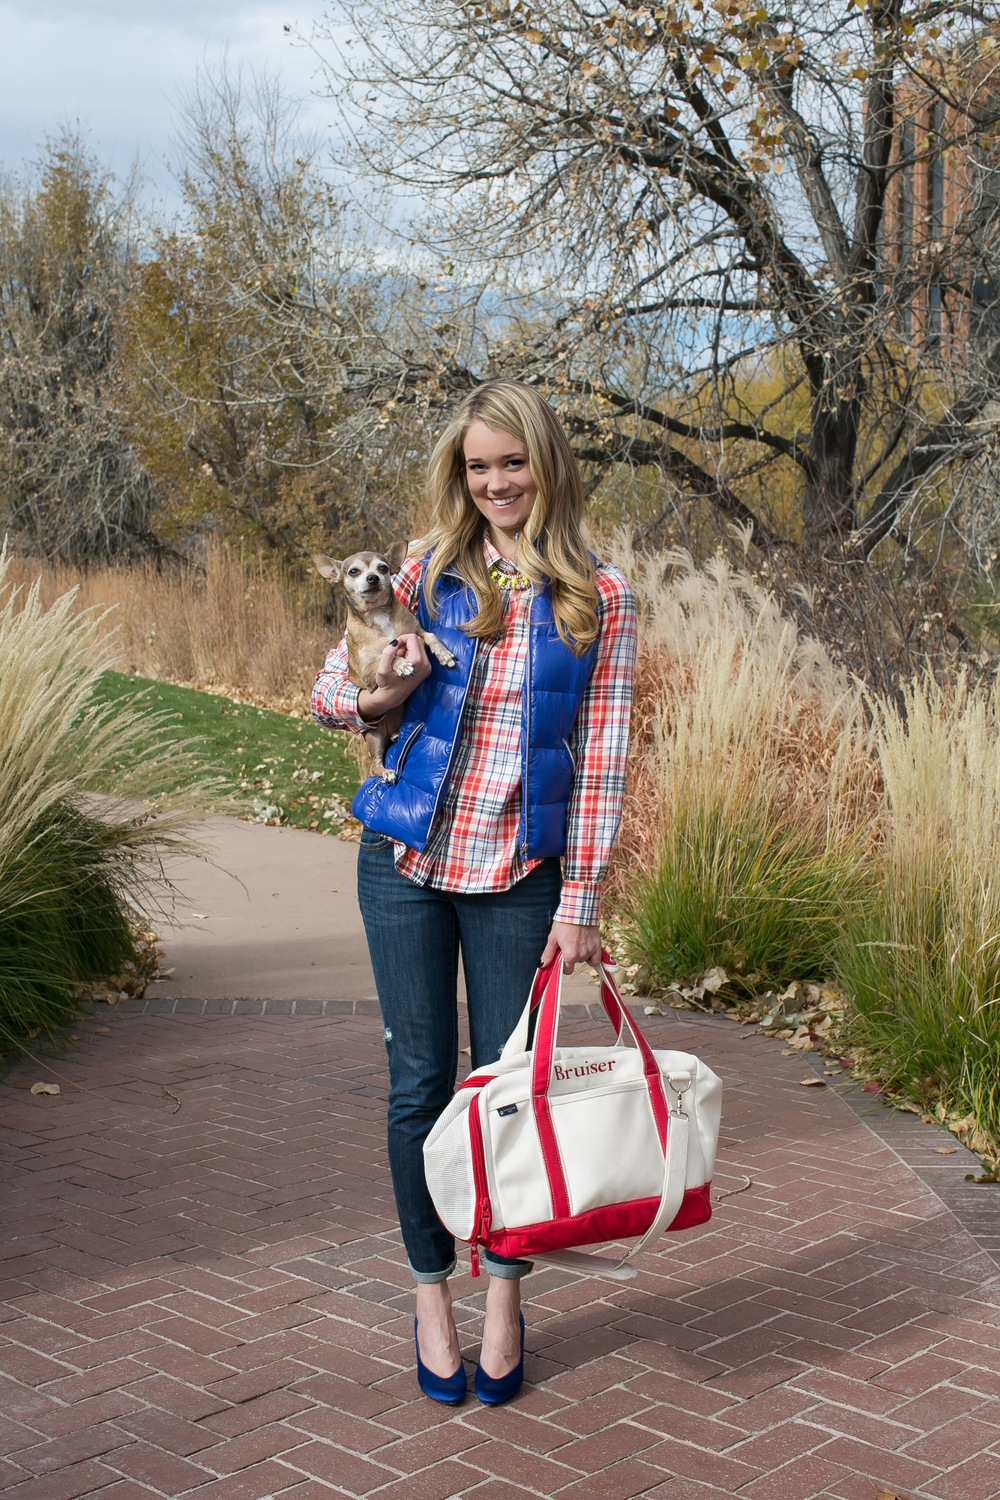 Taste Bluebook ll Bruiser & Plaid ll Full Length with Bag.JPG